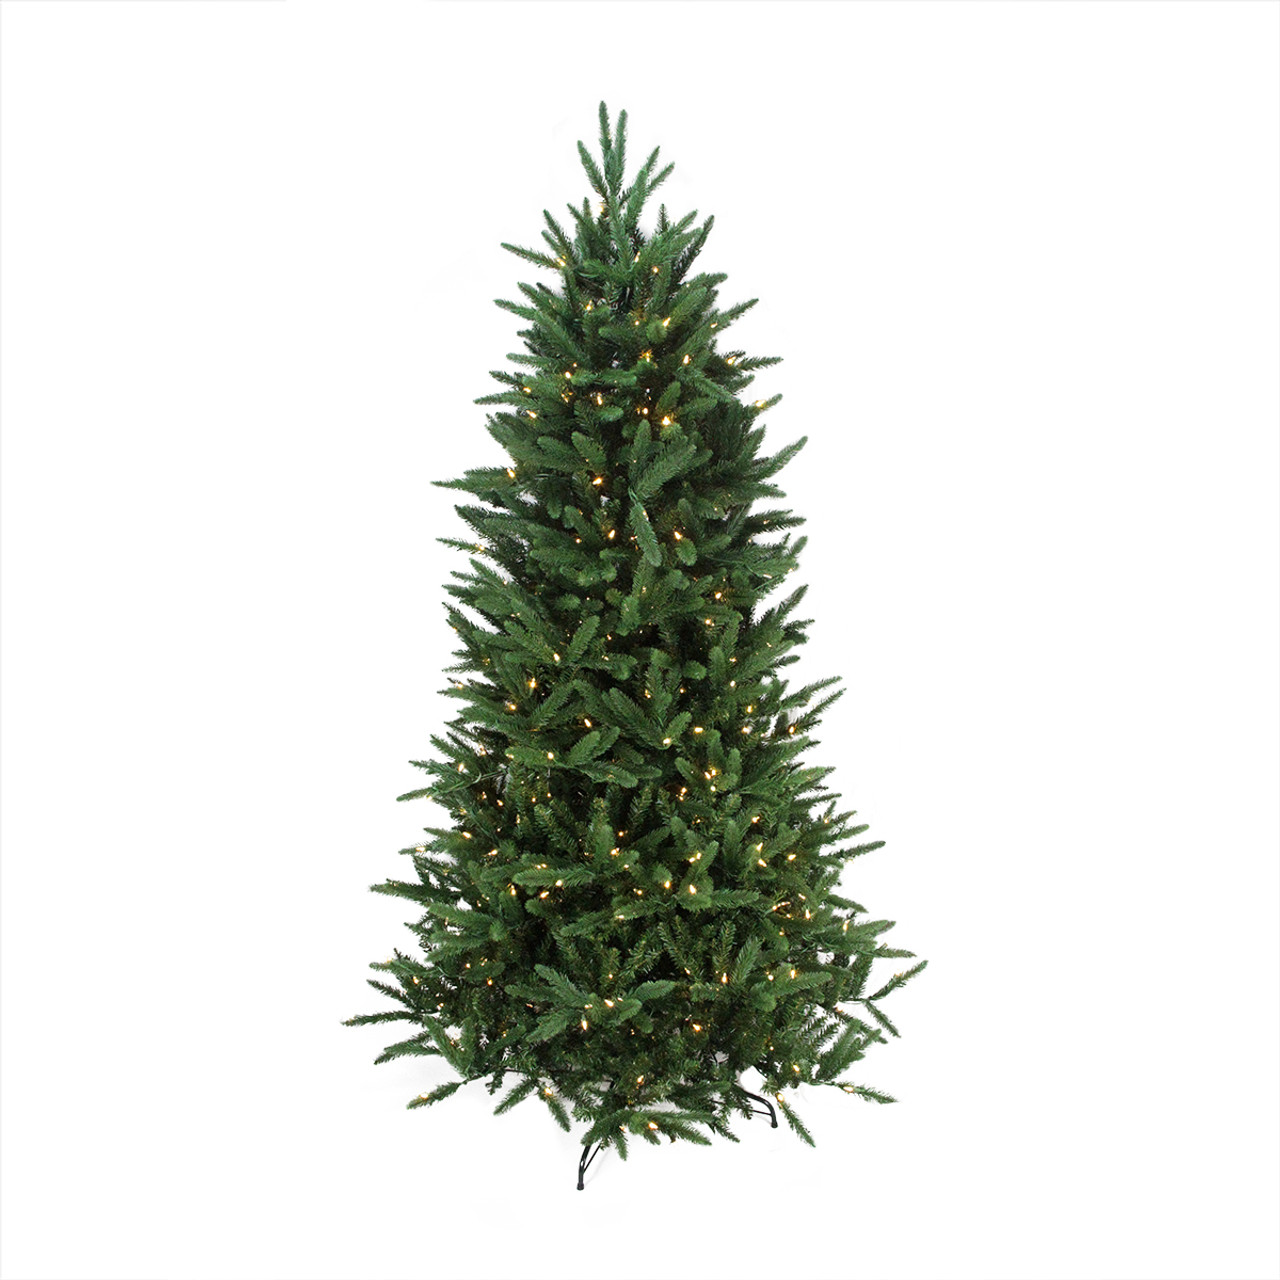 7 5 Foot Artificial Christmas Tree Multi Colored Lights: 7.5' Pre-Lit Mixed Pine Multi-Function Remote Control